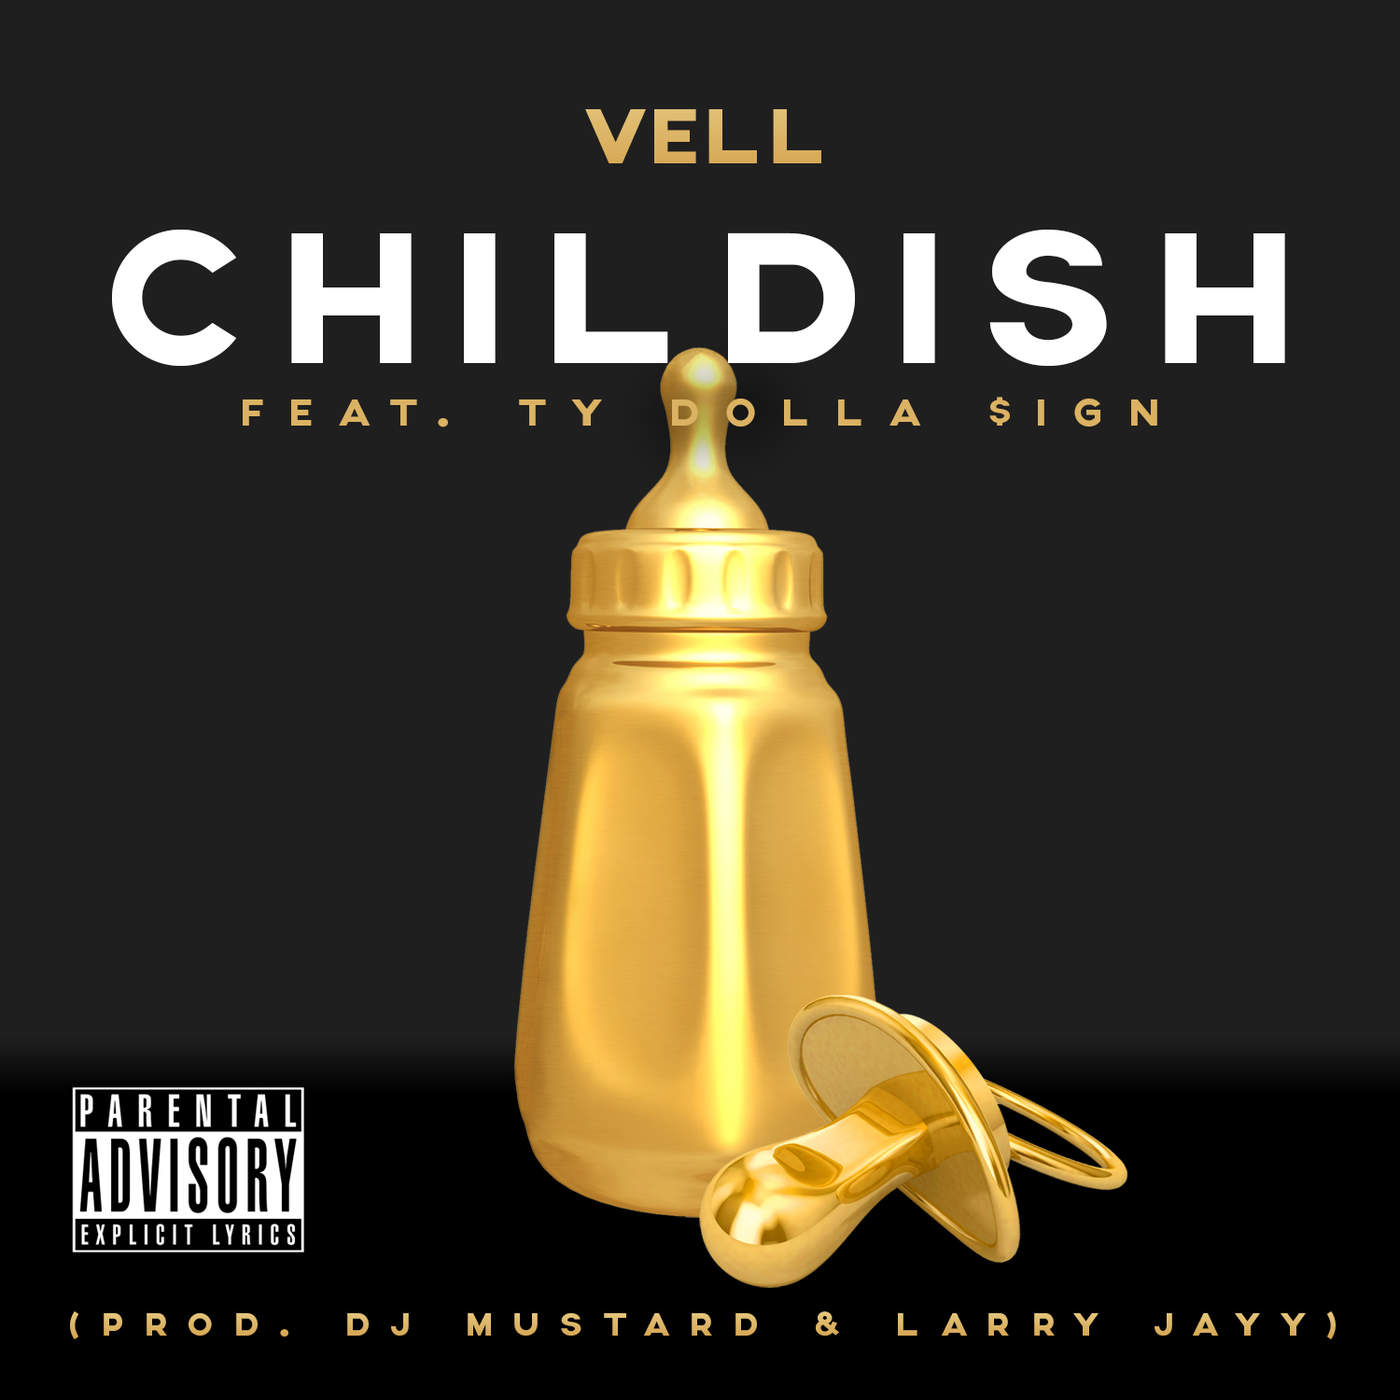 Vell - Childish (feat. Ty Dolla $ign) - Single Cover